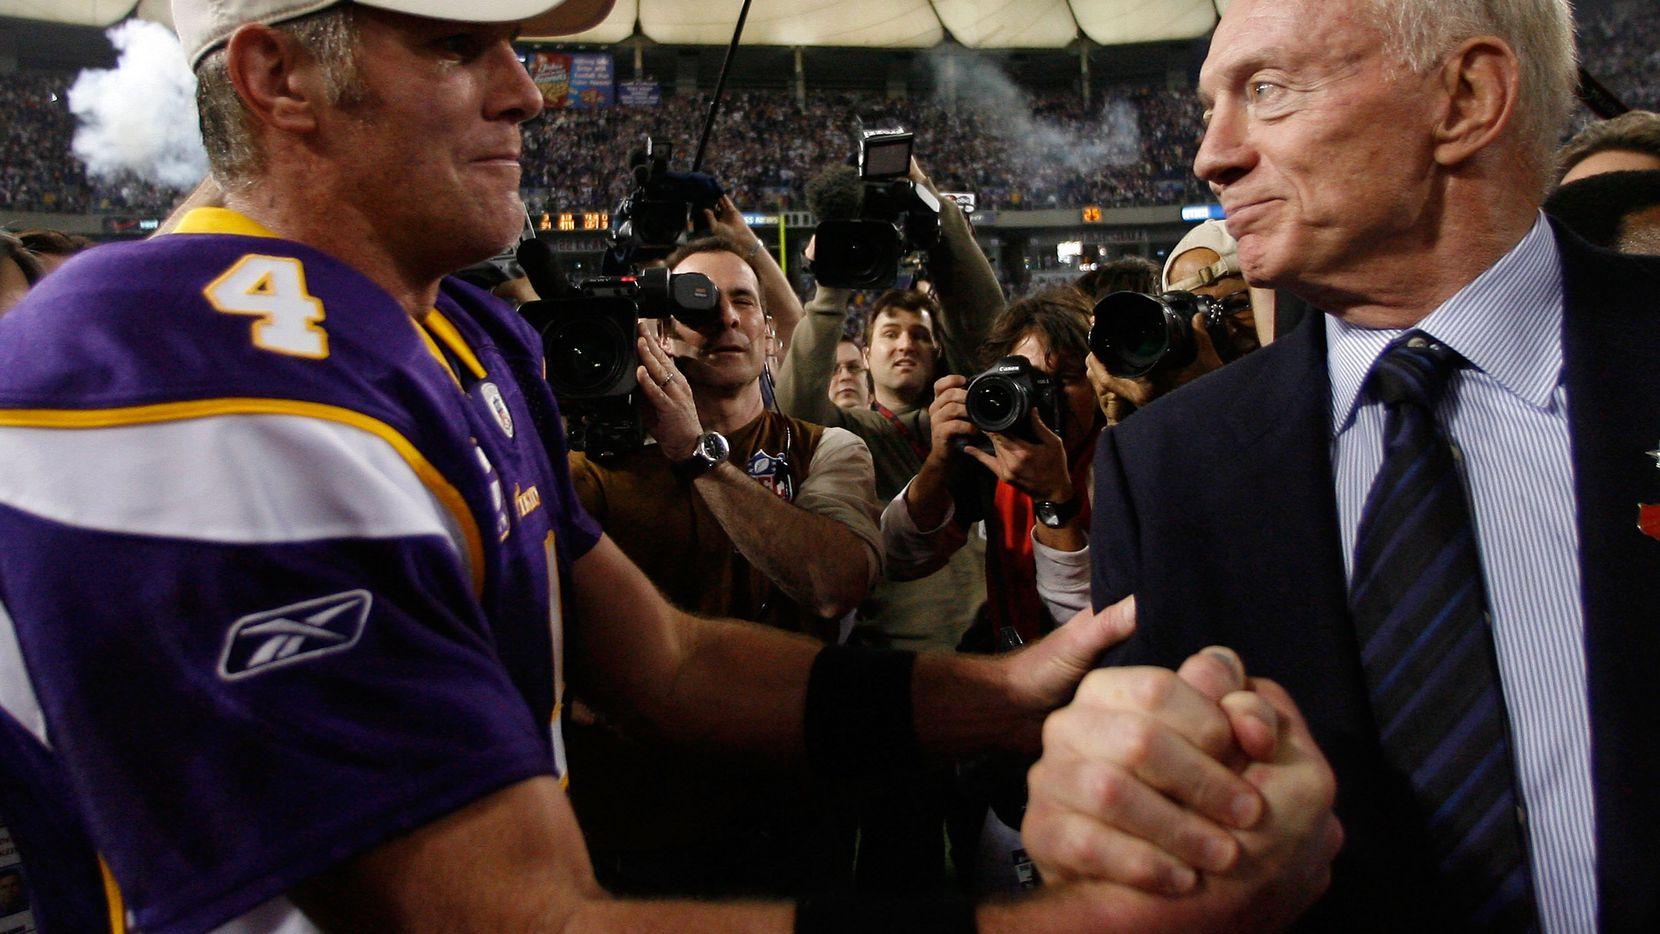 MINNEAPOLIS - JANUARY 17:  Jerry Jones, Owner and General Manager of the Dallas Cowboys, congratulates quarterback Brett Favre #4 of the Minnesota Vikings on their 34-3 victory during the NFC Divisional Playoff Game at Hubert H. Humphrey Metrodome on January 17, 2010 in Minneapolis, Minnesota.  (Photo by Elsa/Getty Images)